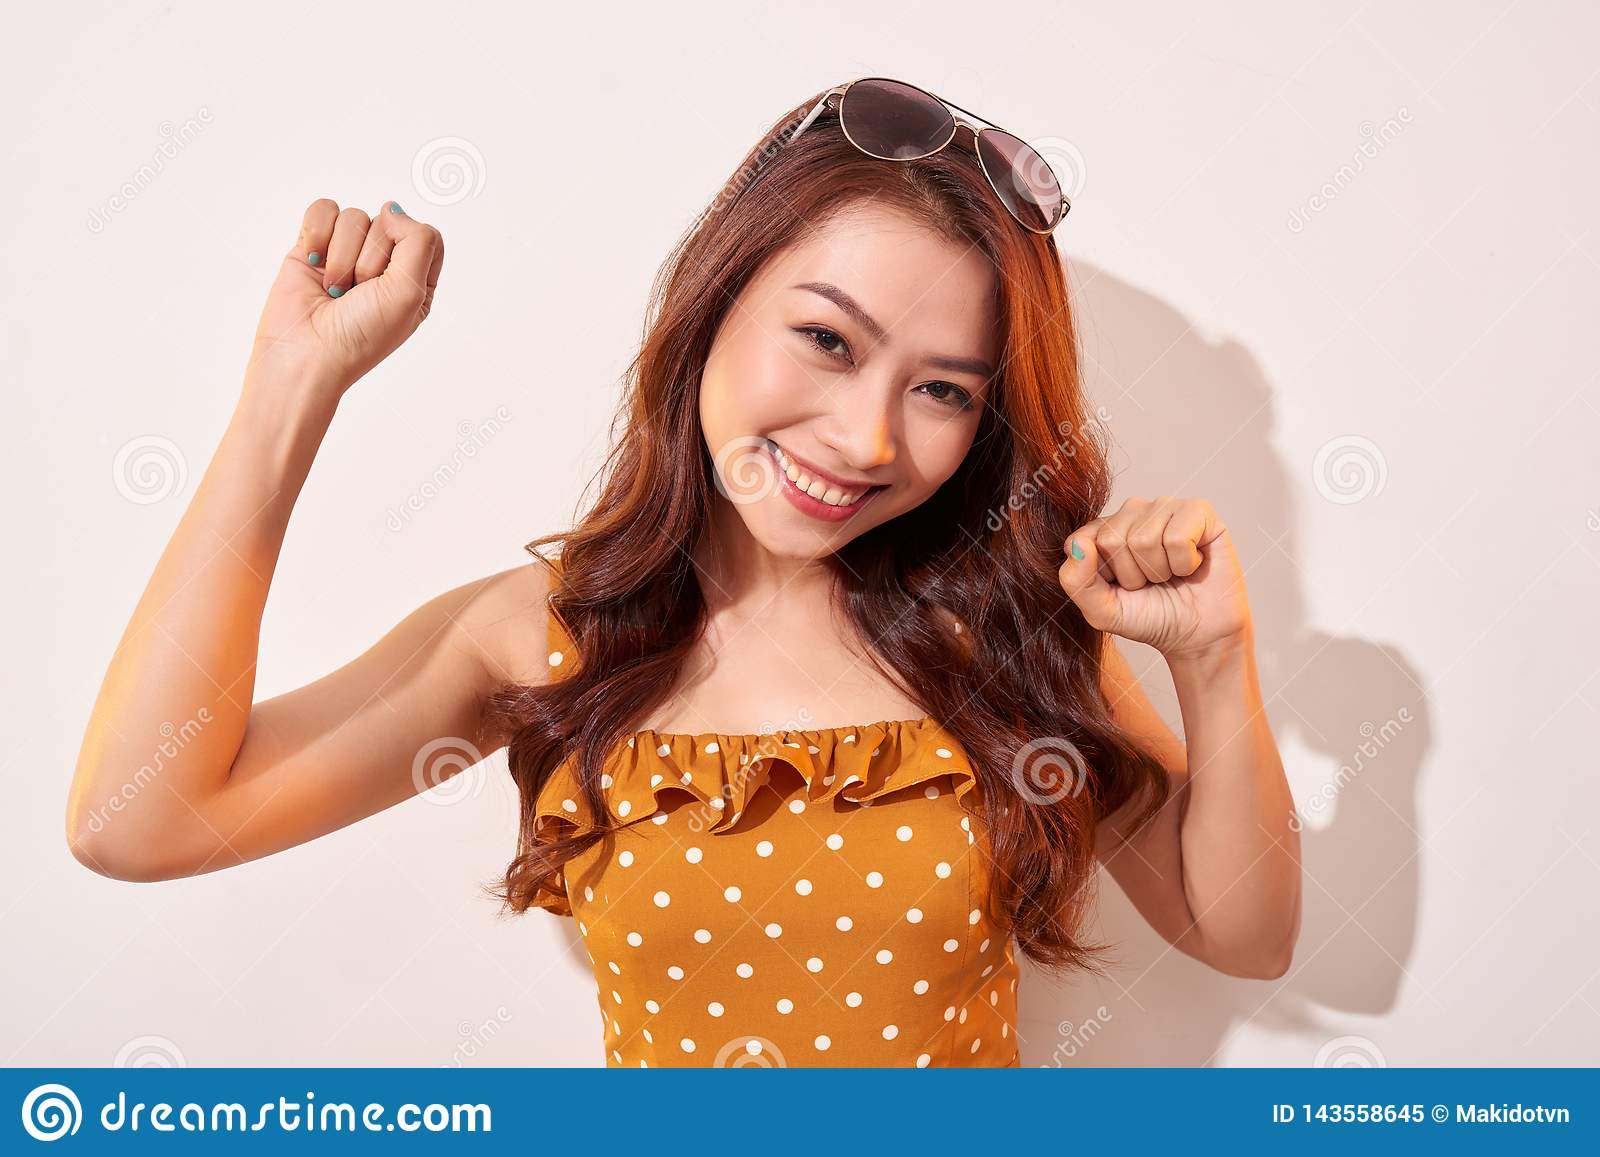 Portrait of cheerful fashion girl going crazy in a orange polka dots dress.